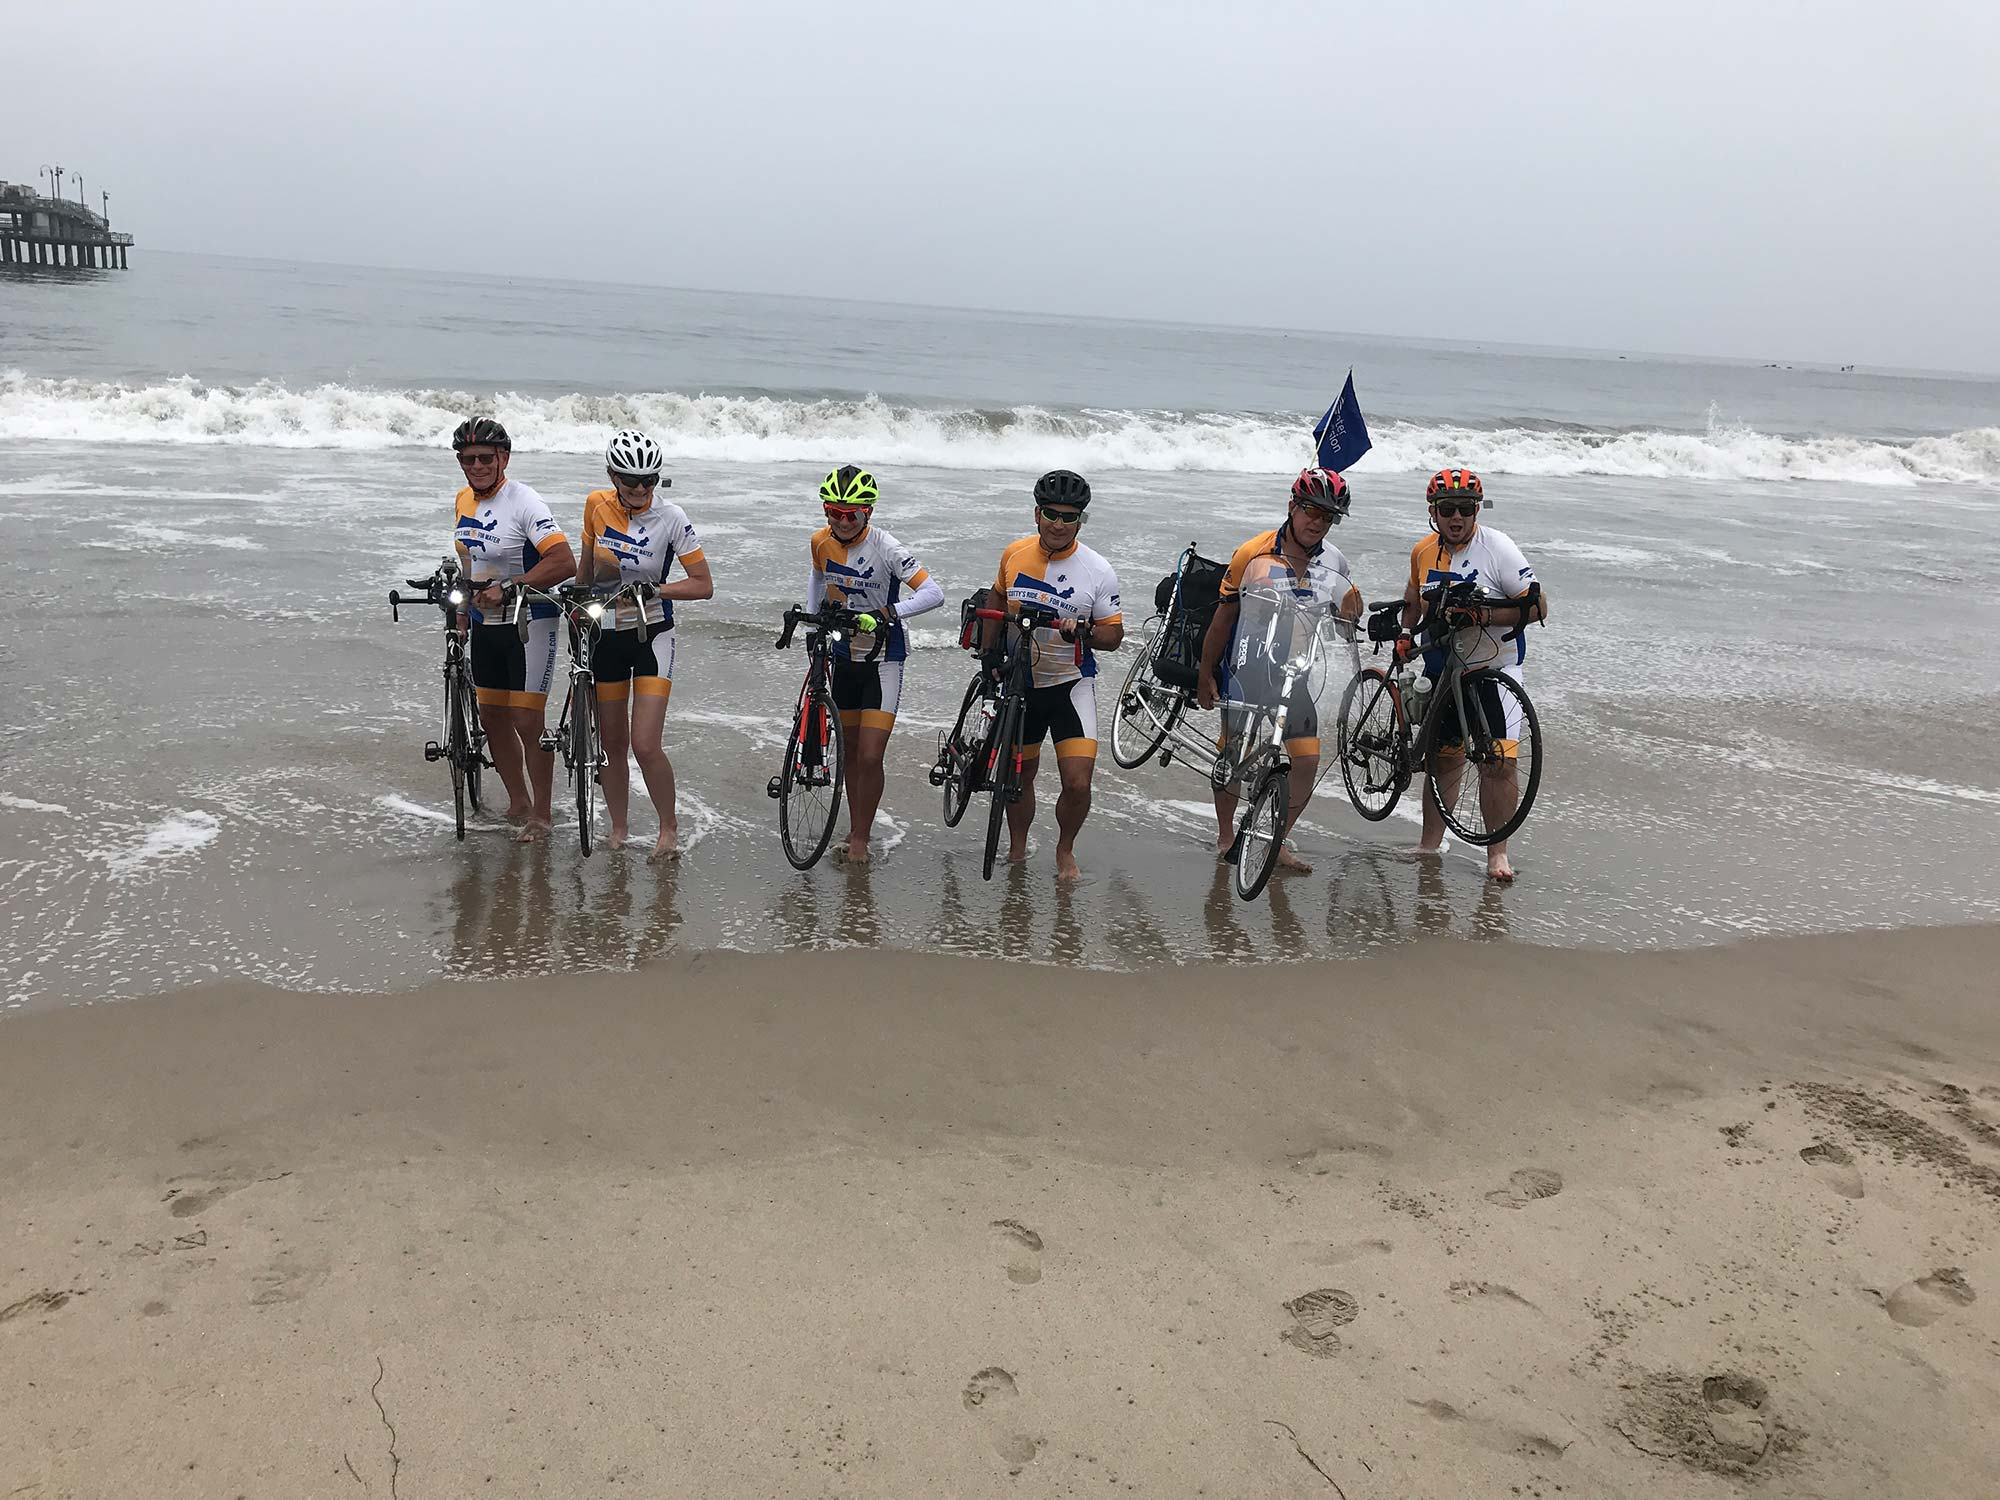 The Scotty's Ride team dips their bike tires in the pacific ocean before heading East.